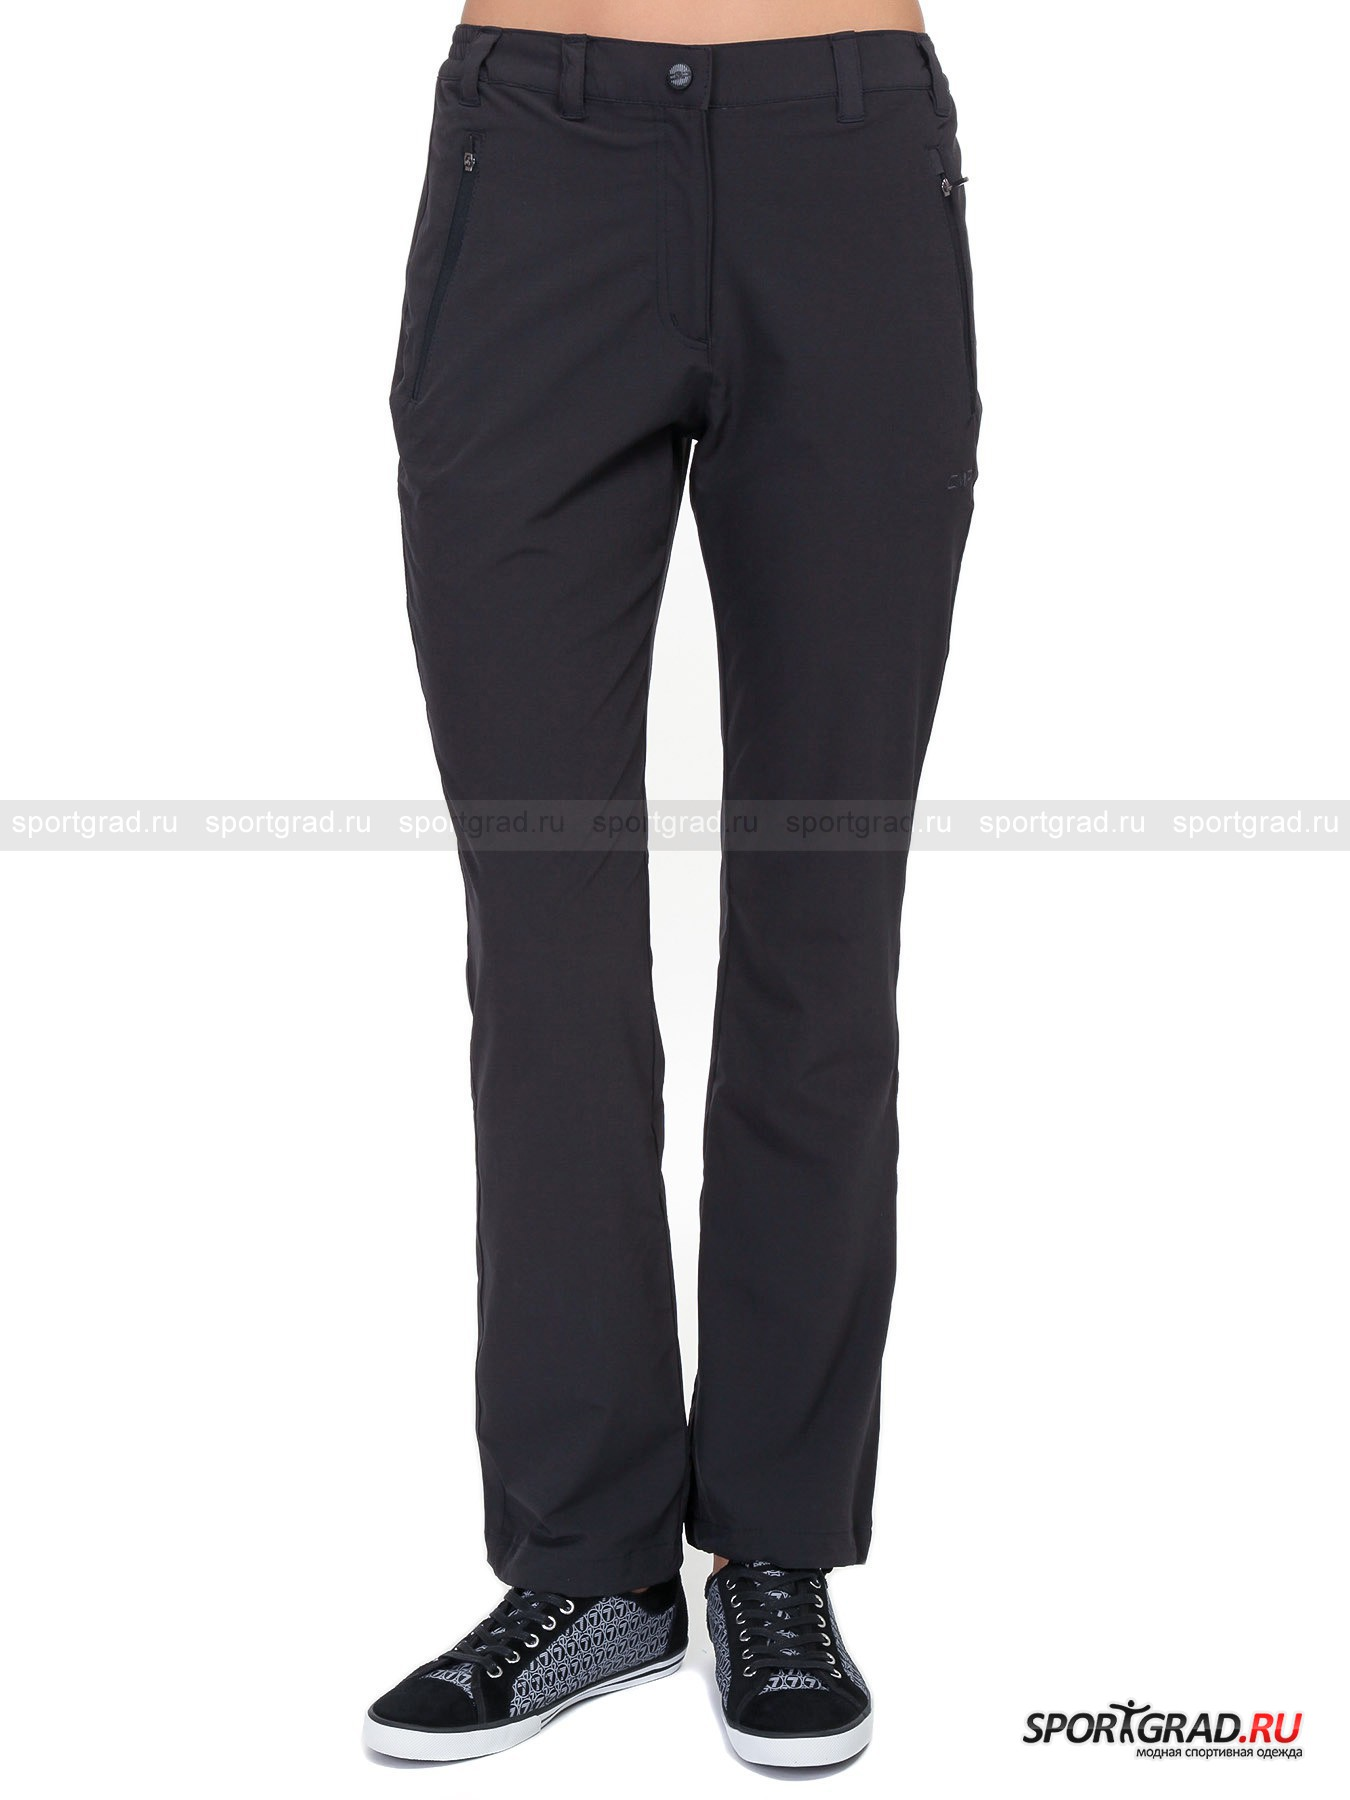 ����� ������� WOMAN STRATCH LONG PANT CAMPAGNOLO ��� ��������� � �������